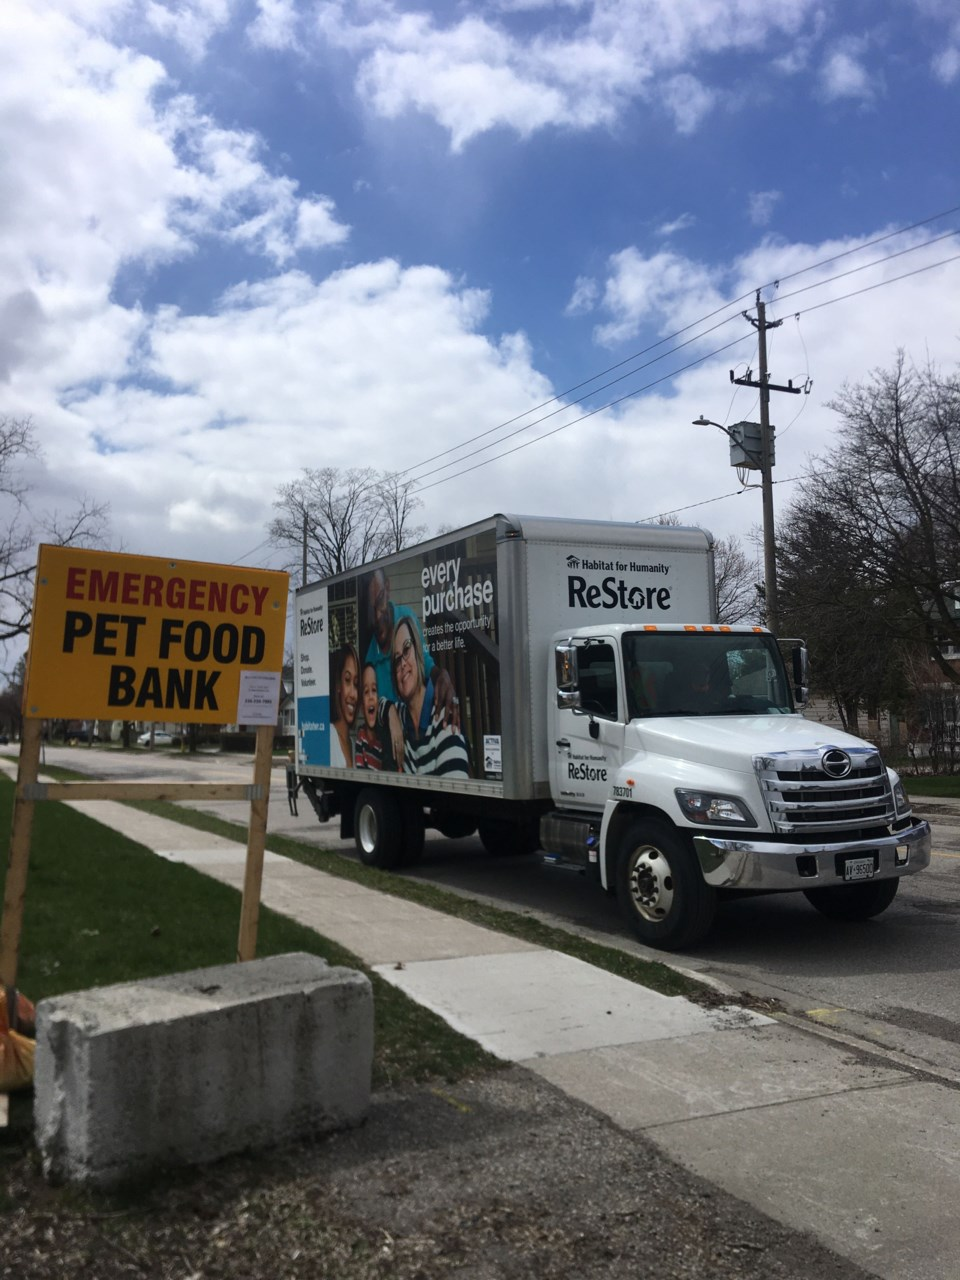 Habitat for Humanity pet food delivery